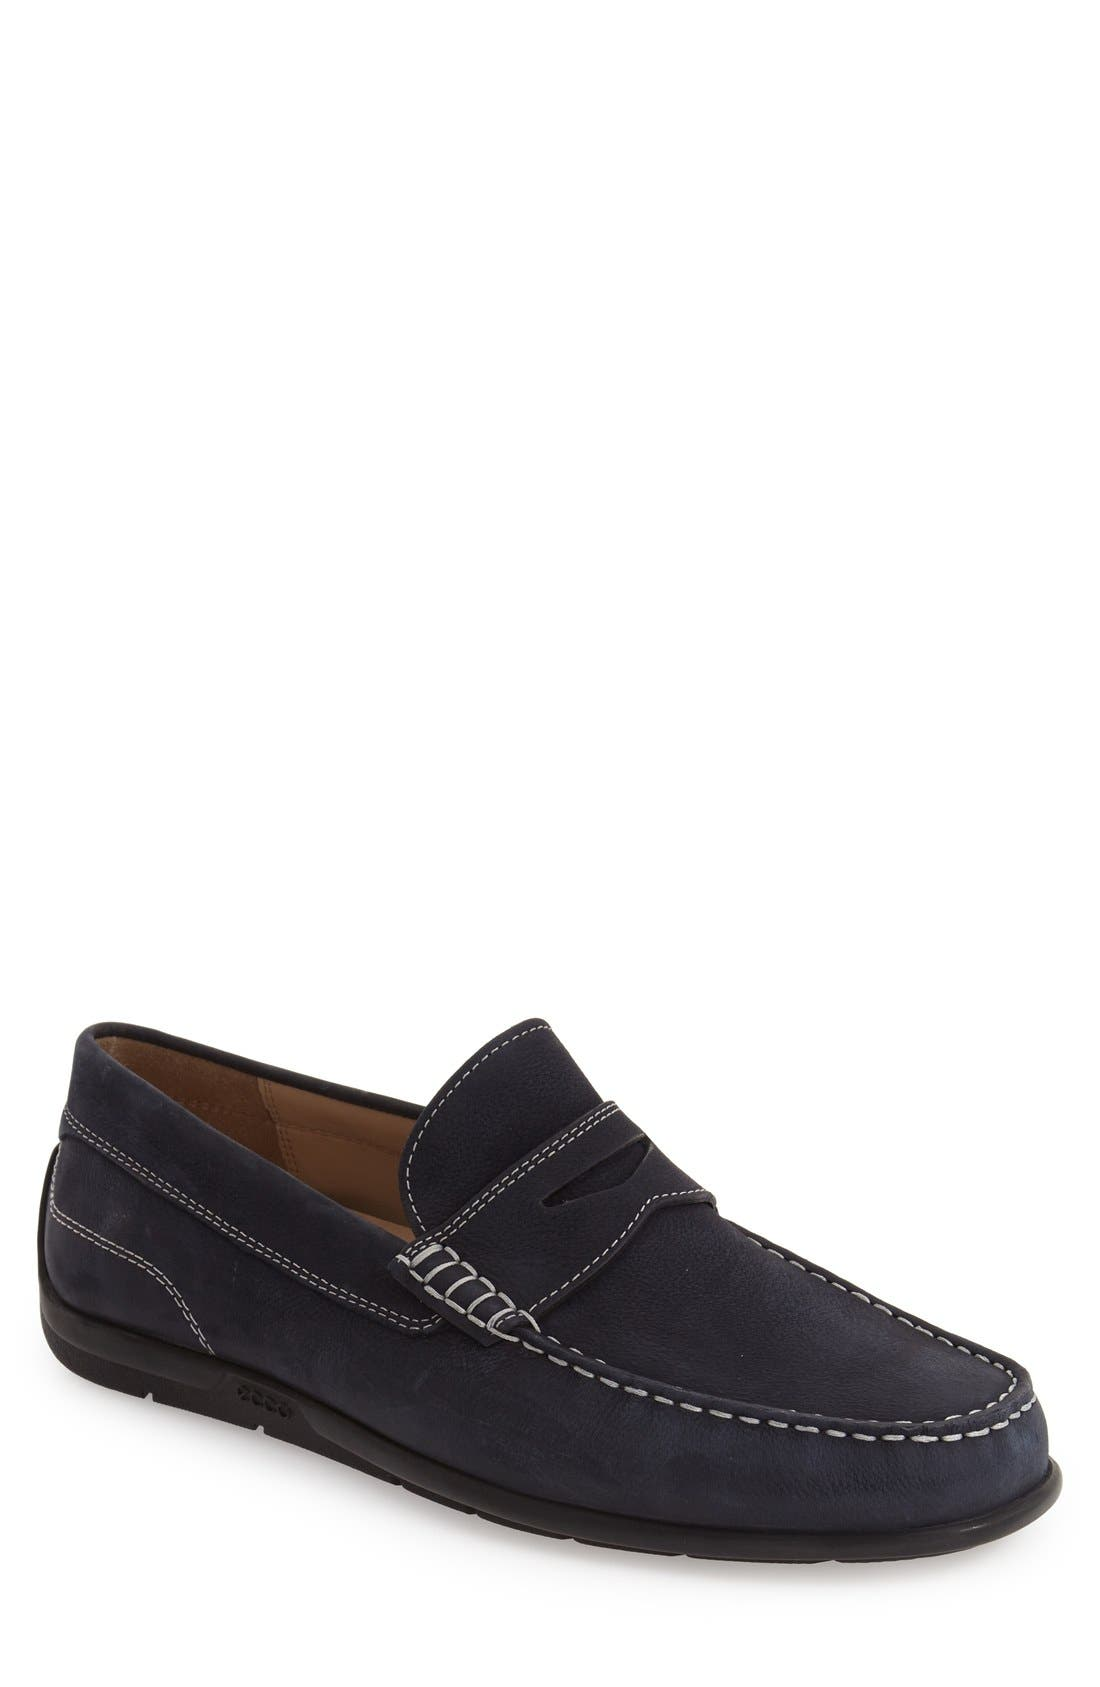 'Classic Moc 2.0' Penny Loafer,                             Main thumbnail 5, color,